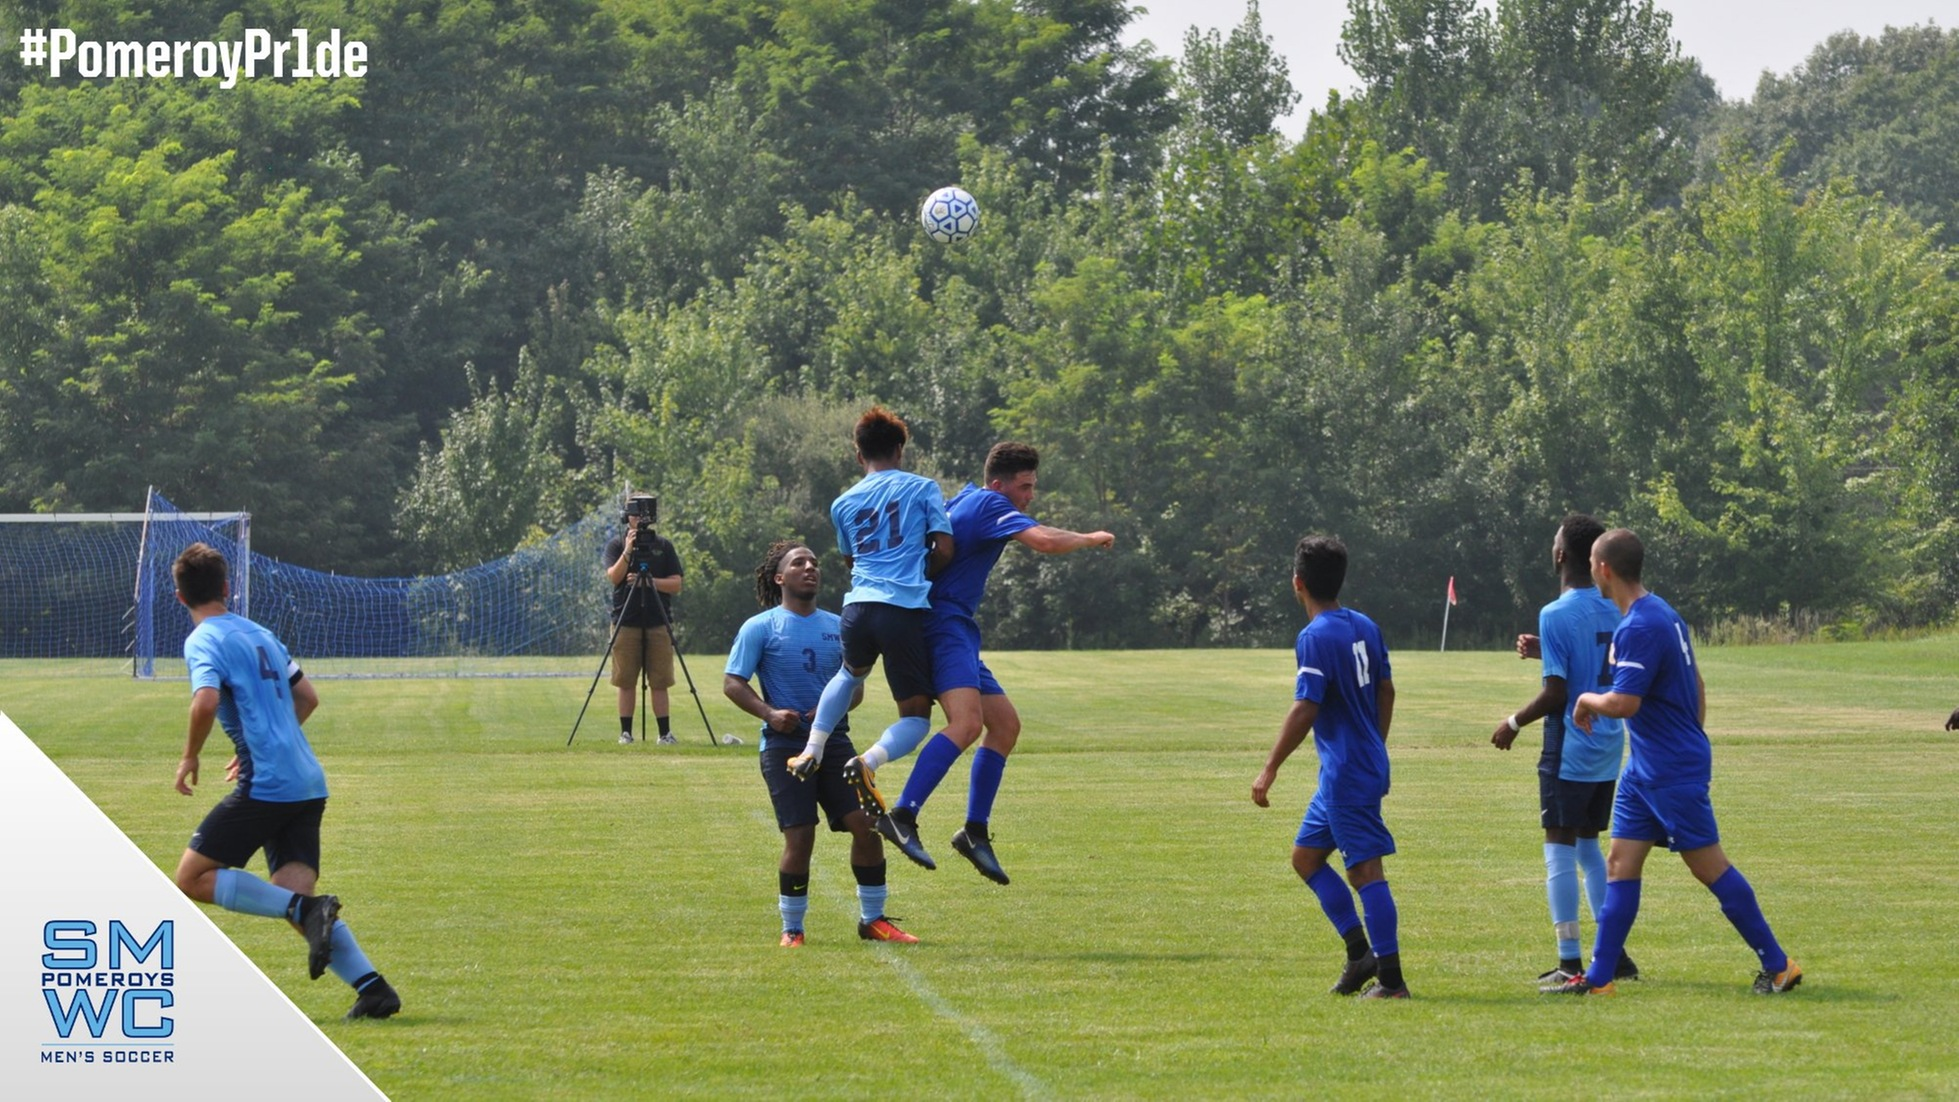 Inaugural Men's Soccer Match Ends With A Loss